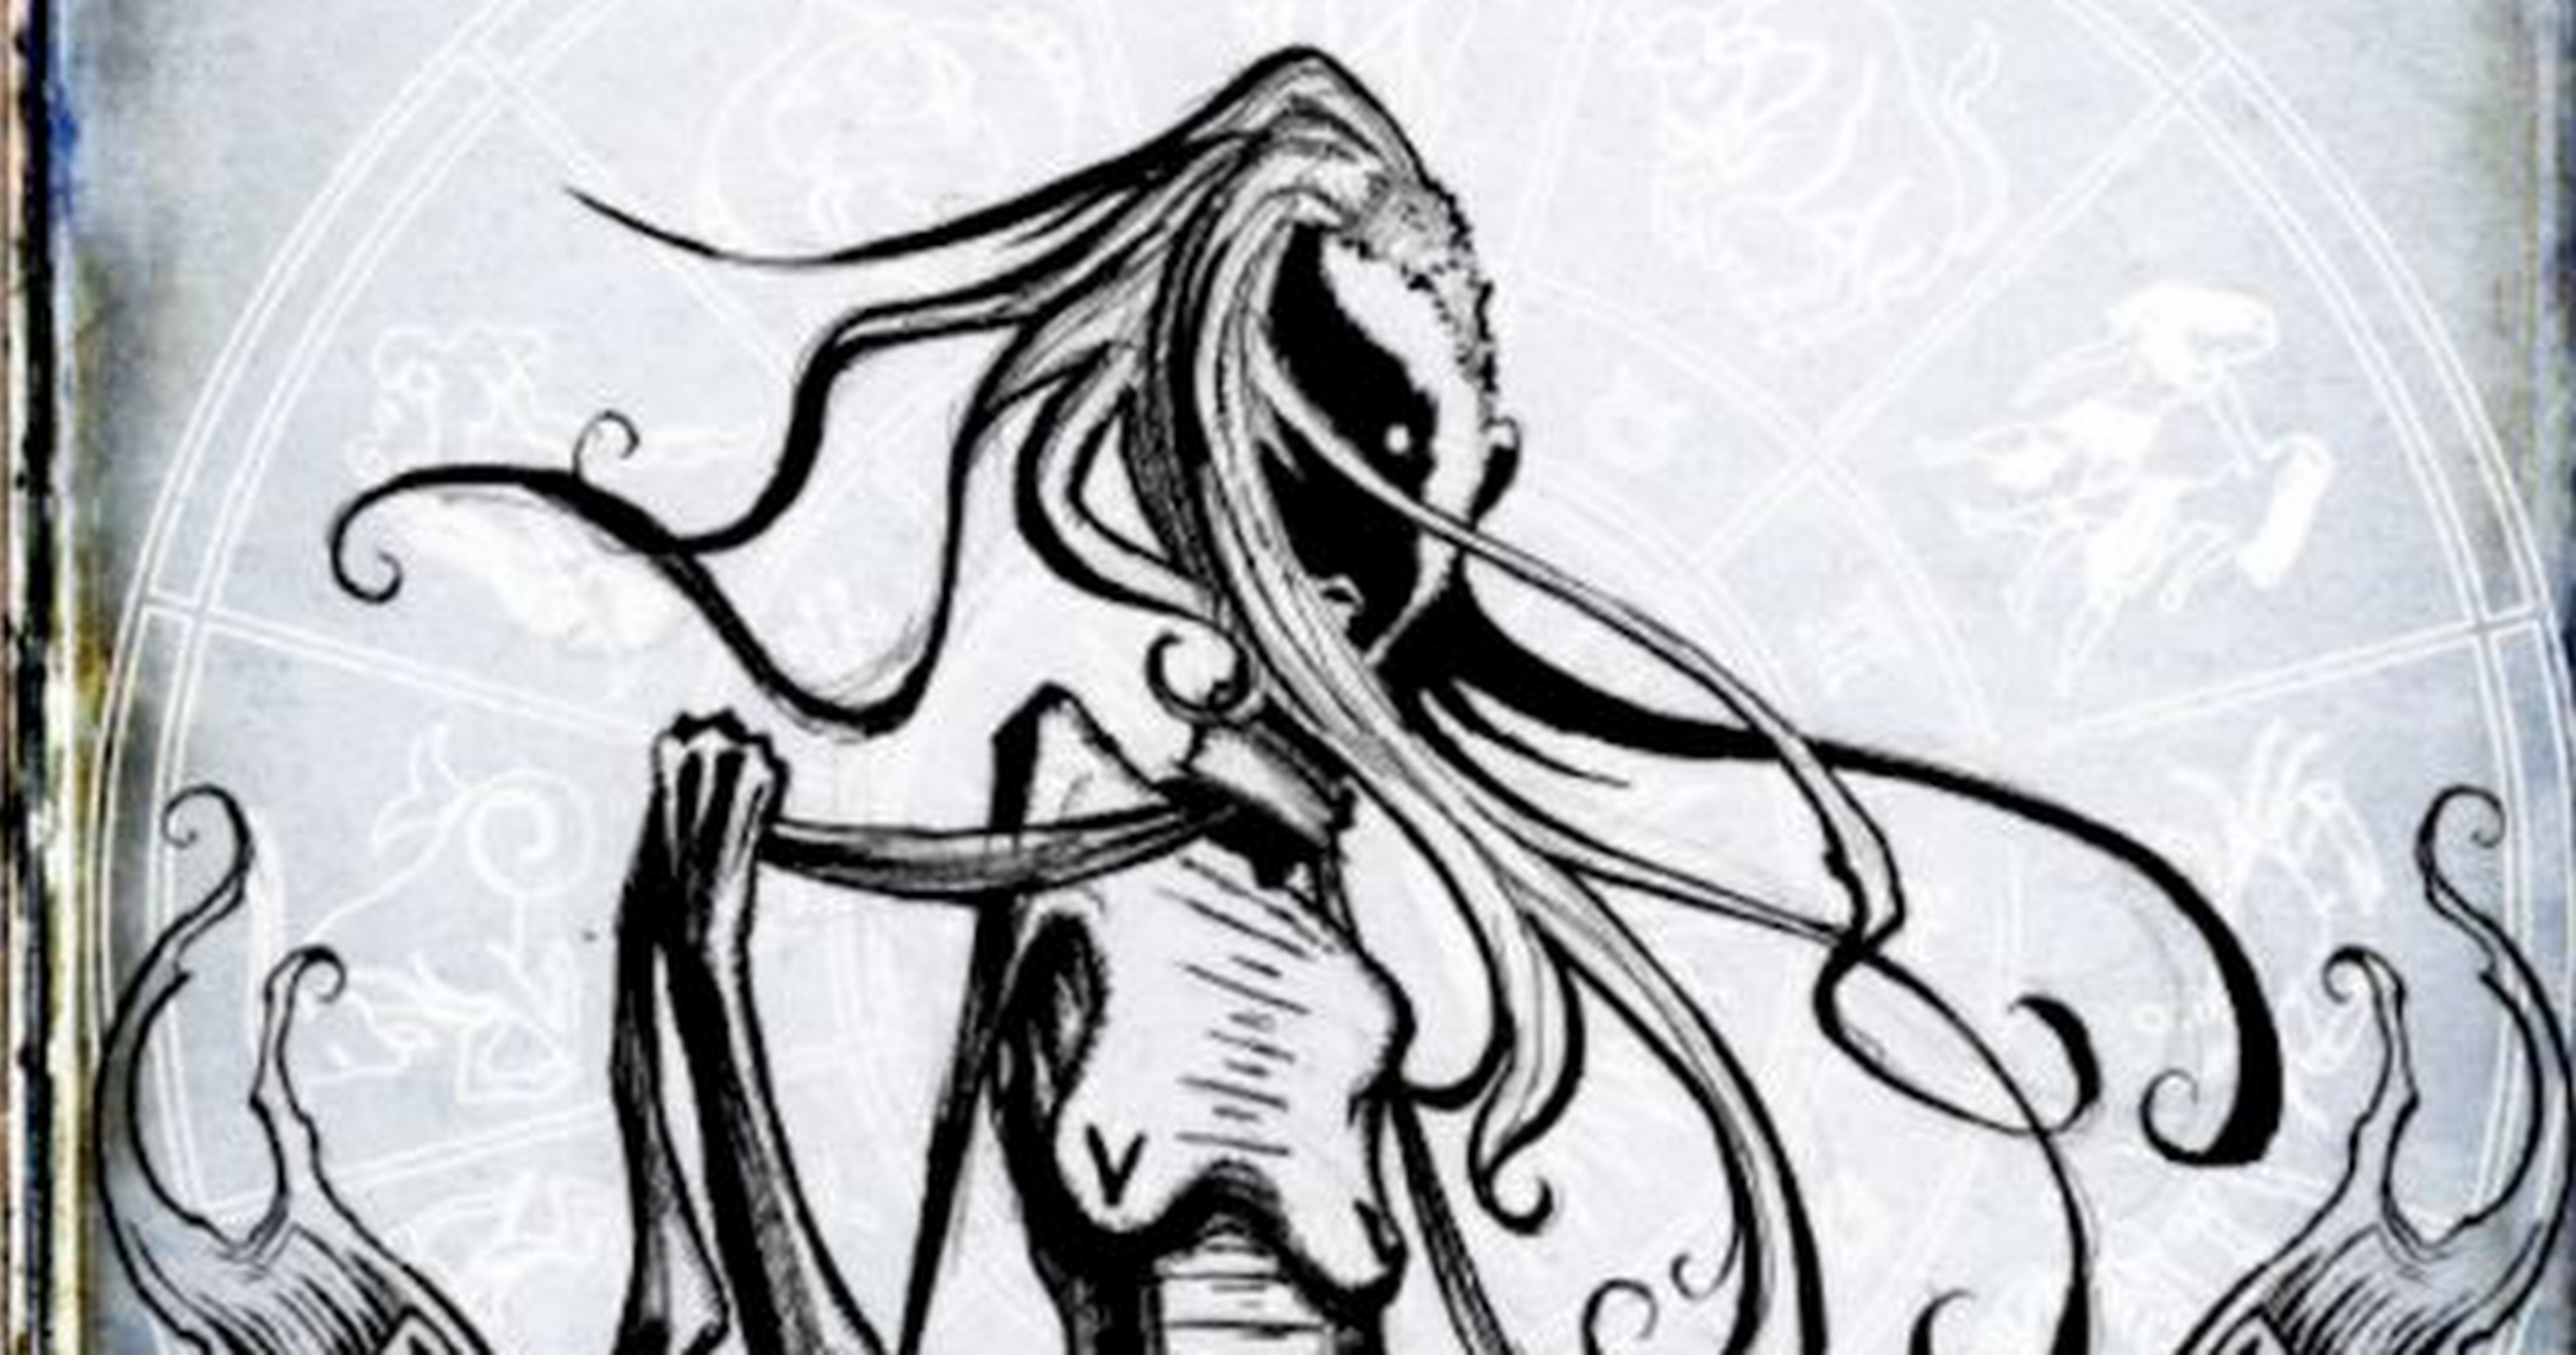 5120x2694 Artist Shows The Dark Side Of Zodiac Signs With Creepy Sketches